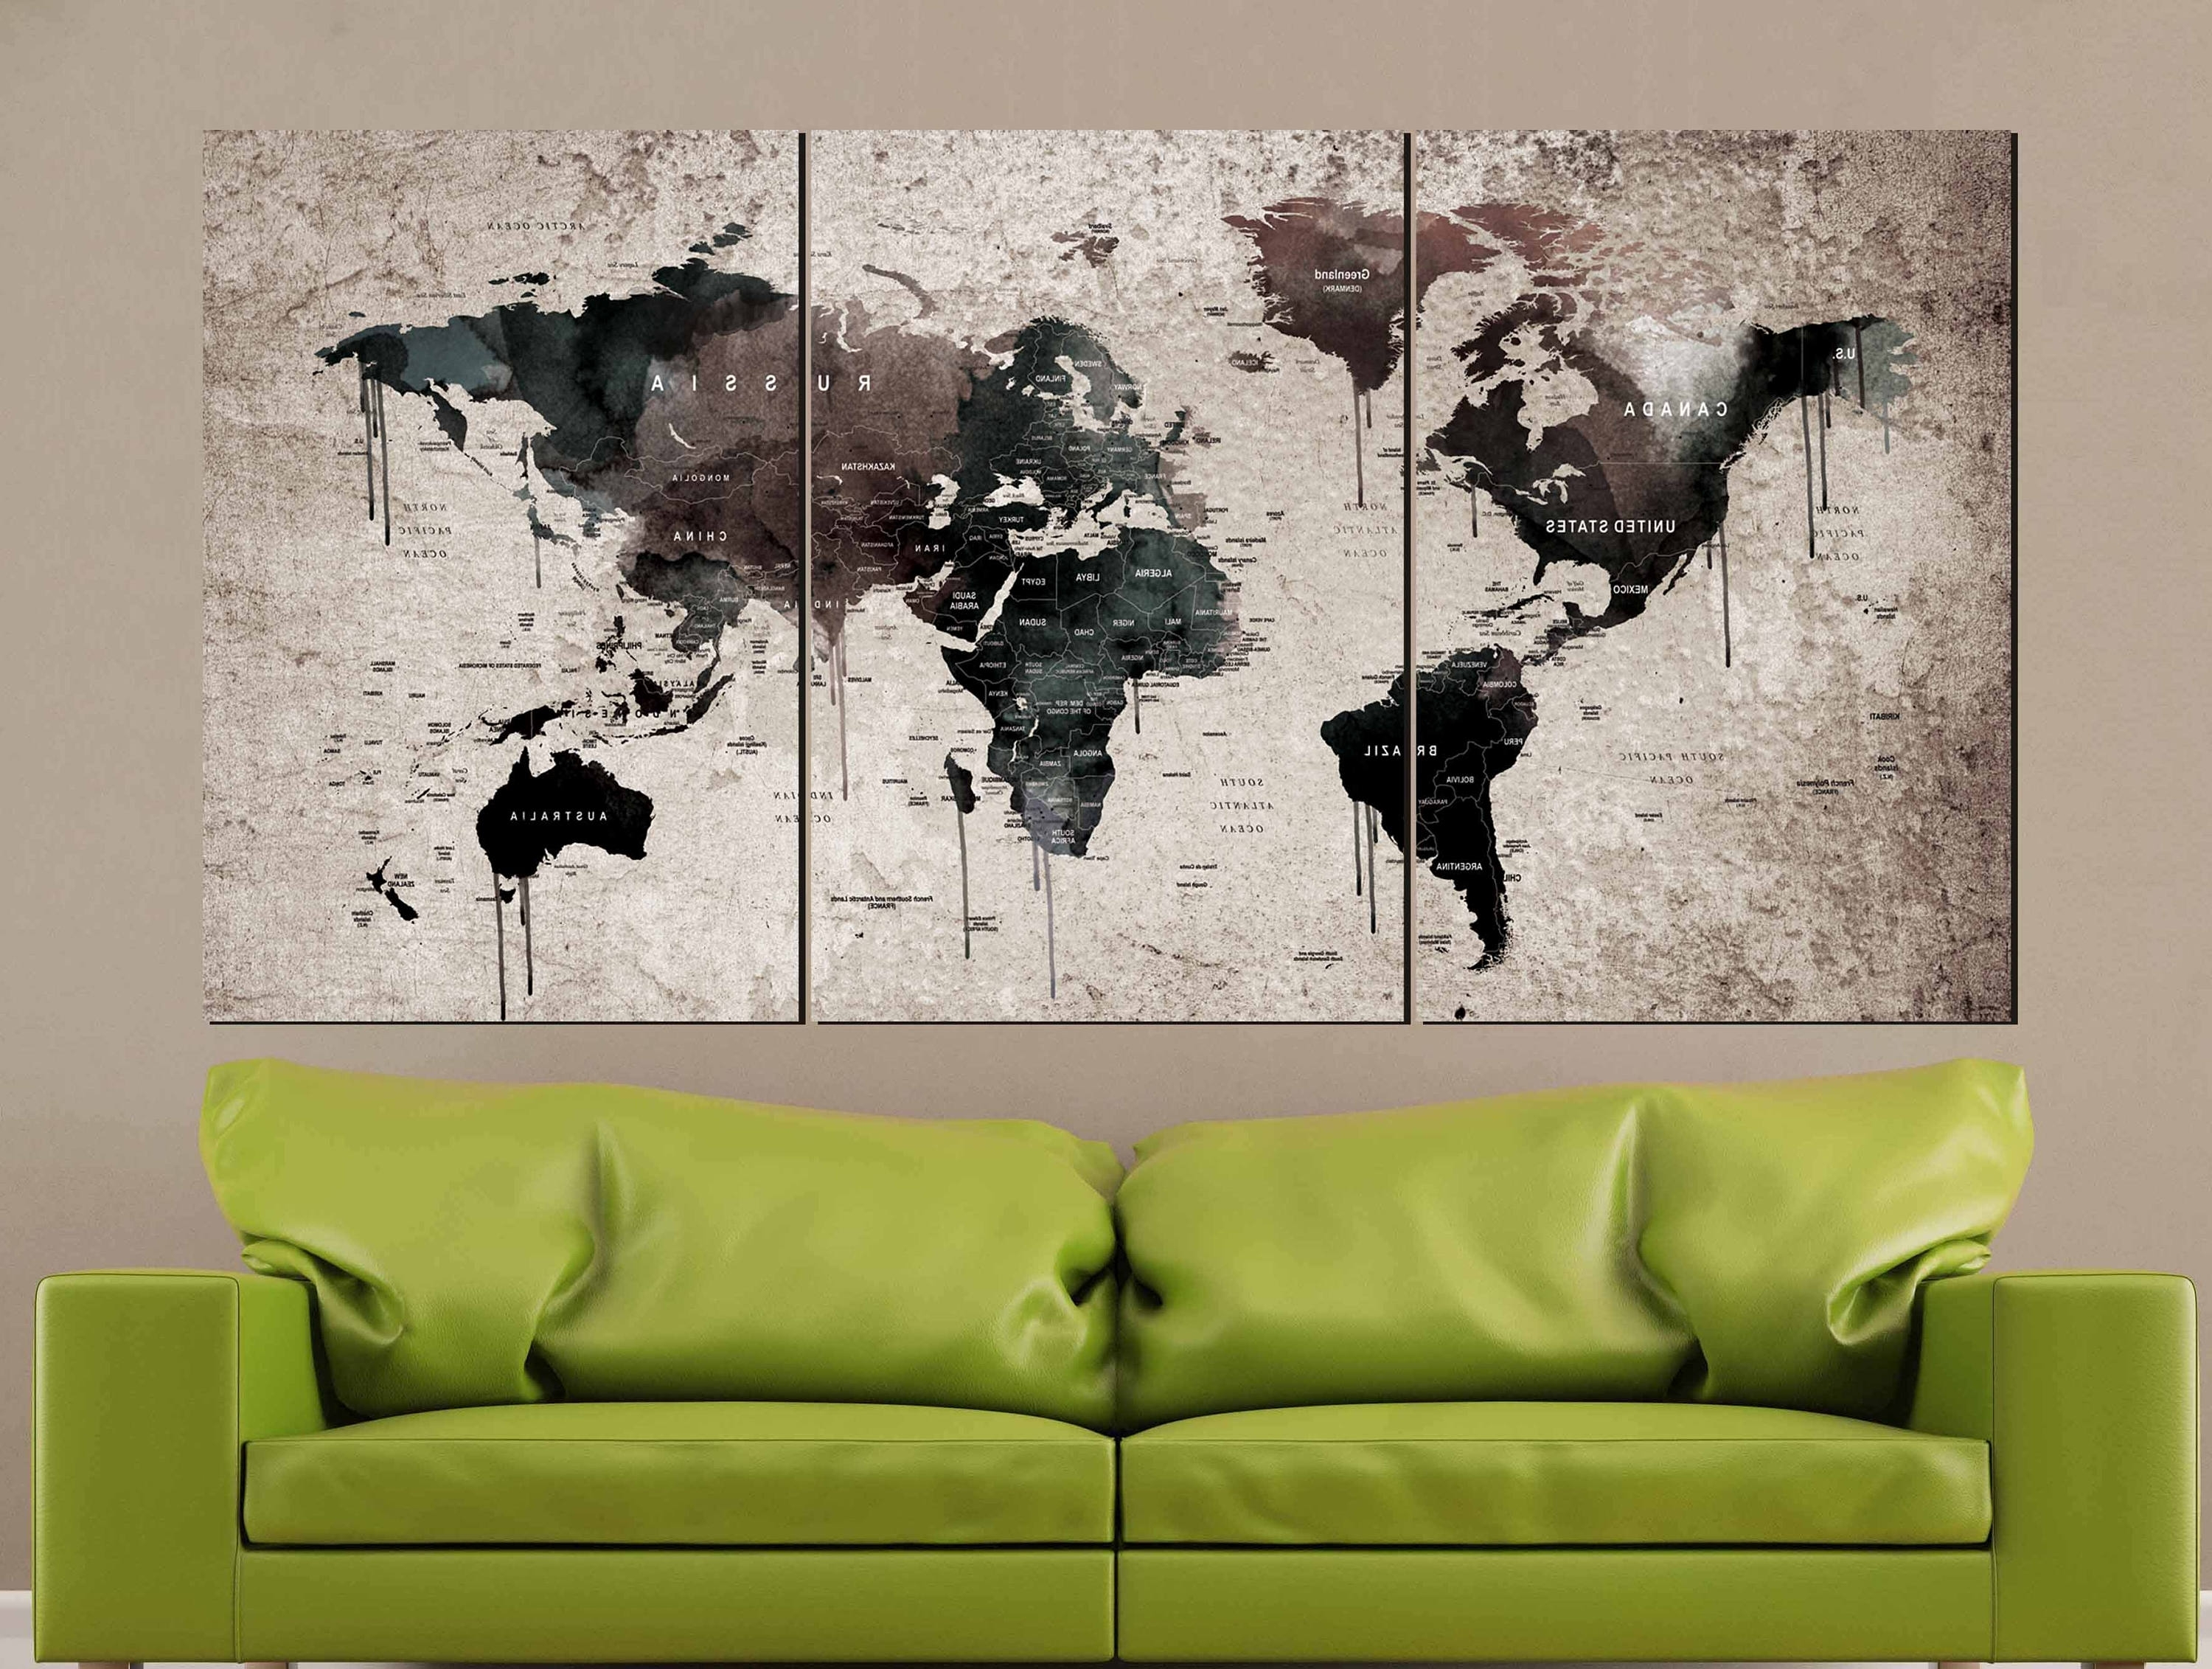 Wall Art World Map Regarding 2018 World Map Vintage,world Map Wall Art,vintage Map Canvas Print,world (View 17 of 20)